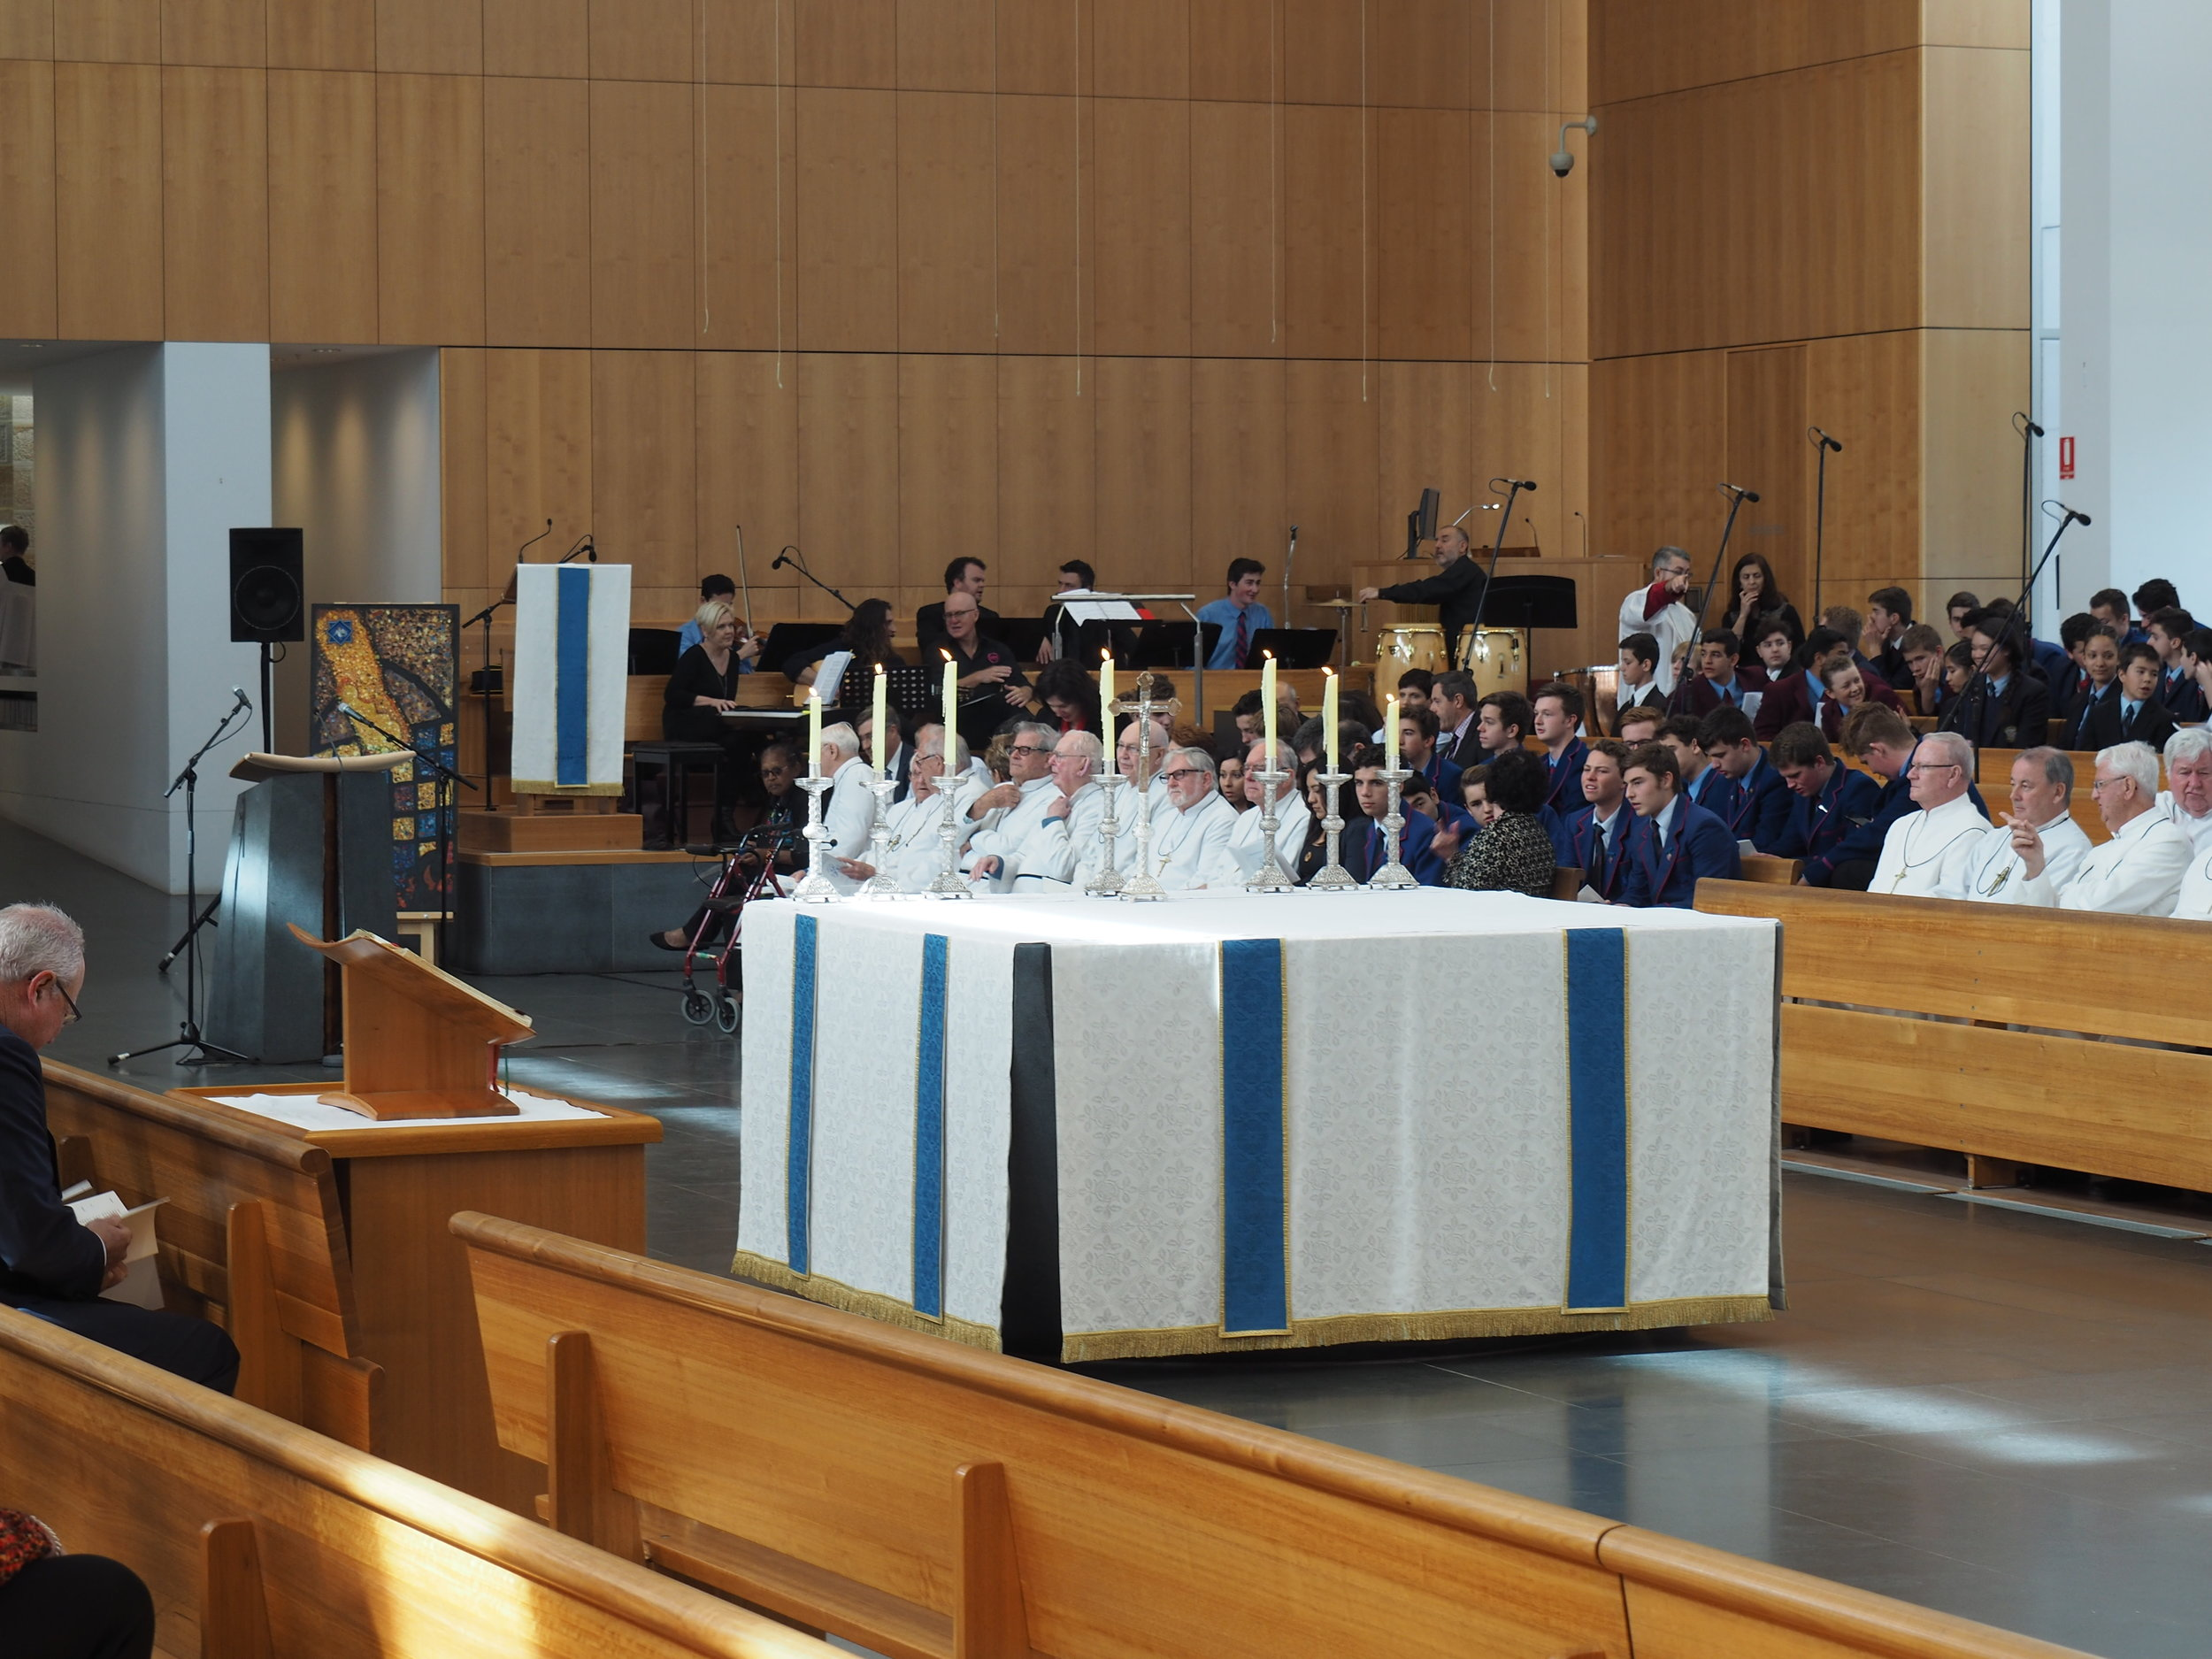 Bicentenary Mass Sydney 12 Aug 2017 Photos by Paul Harris 00006.jpg